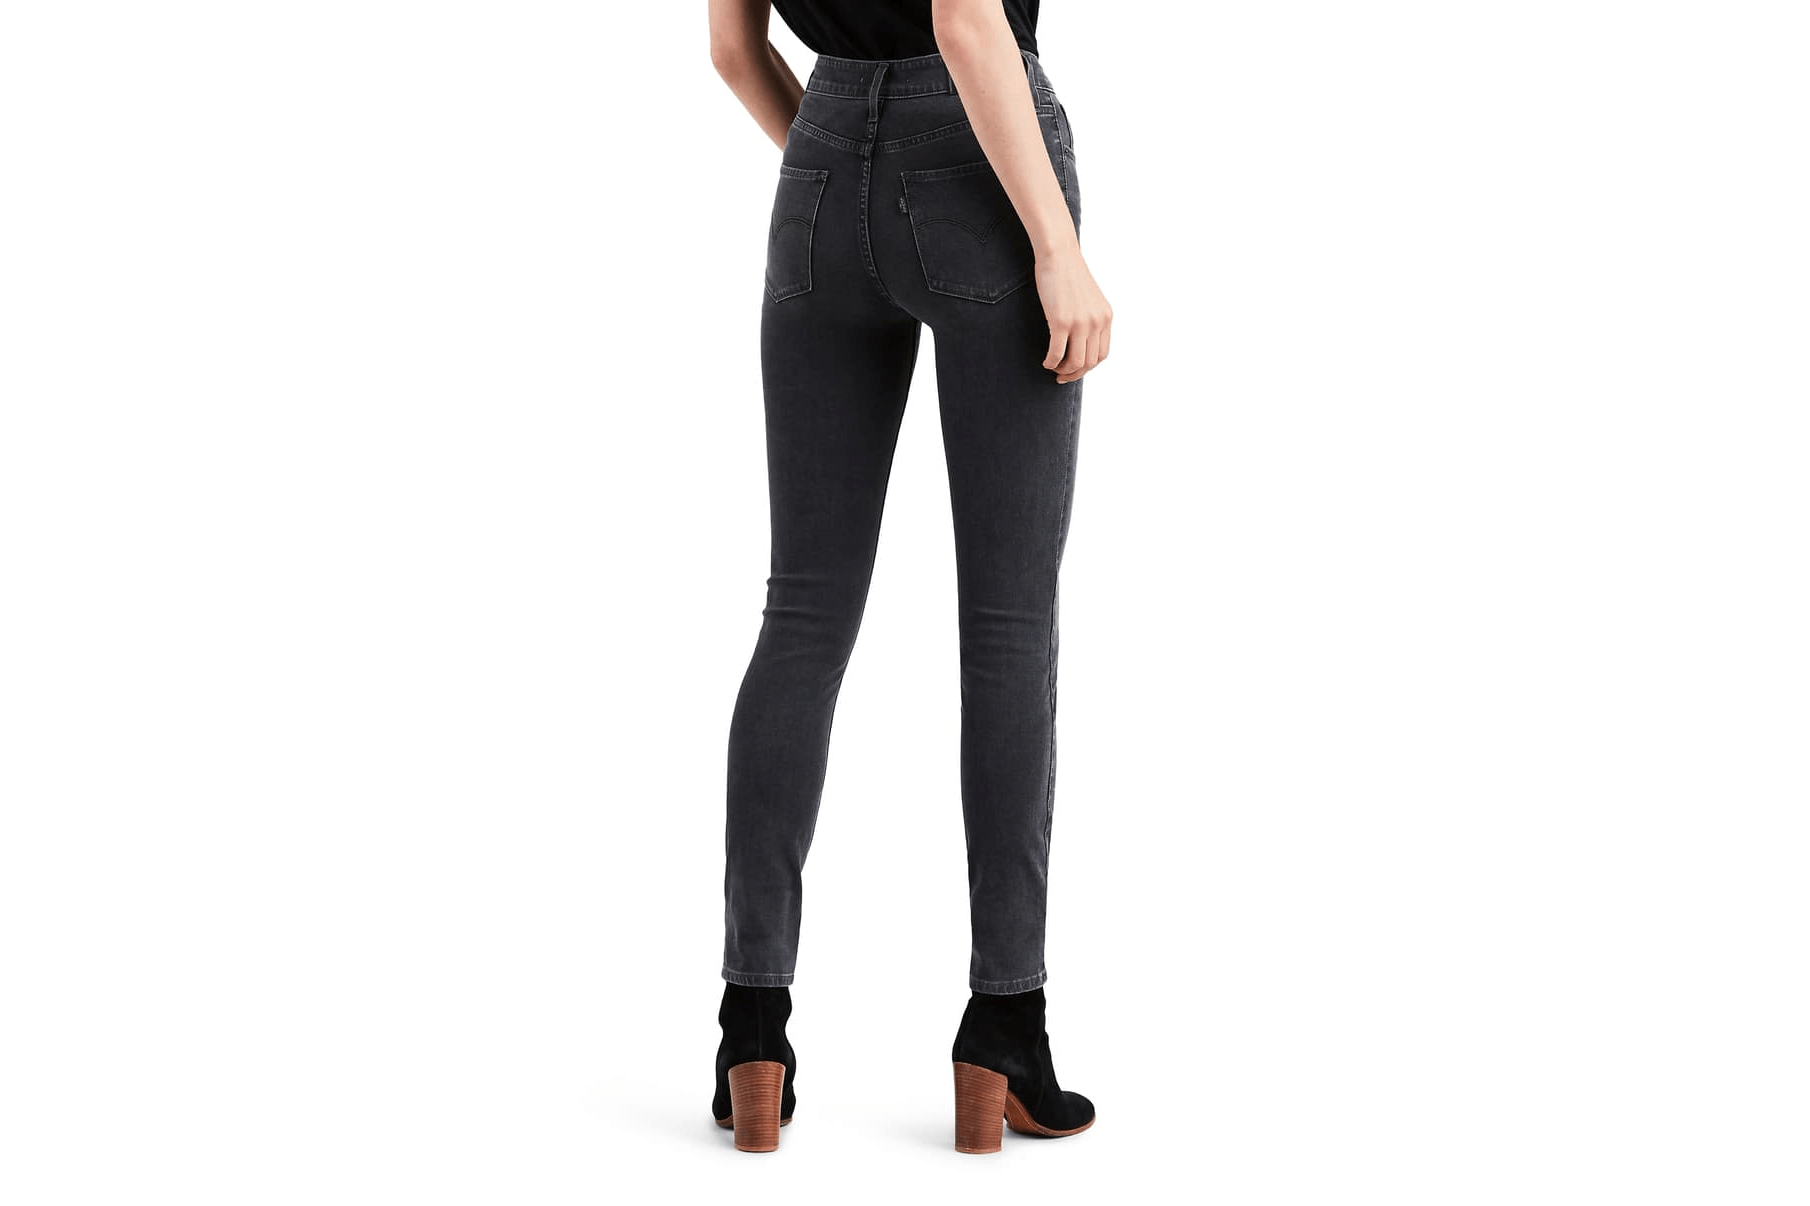 721 HIGH RISE SKINNY CALIFORNIA WOMENS SOFTGOODS LEVIS